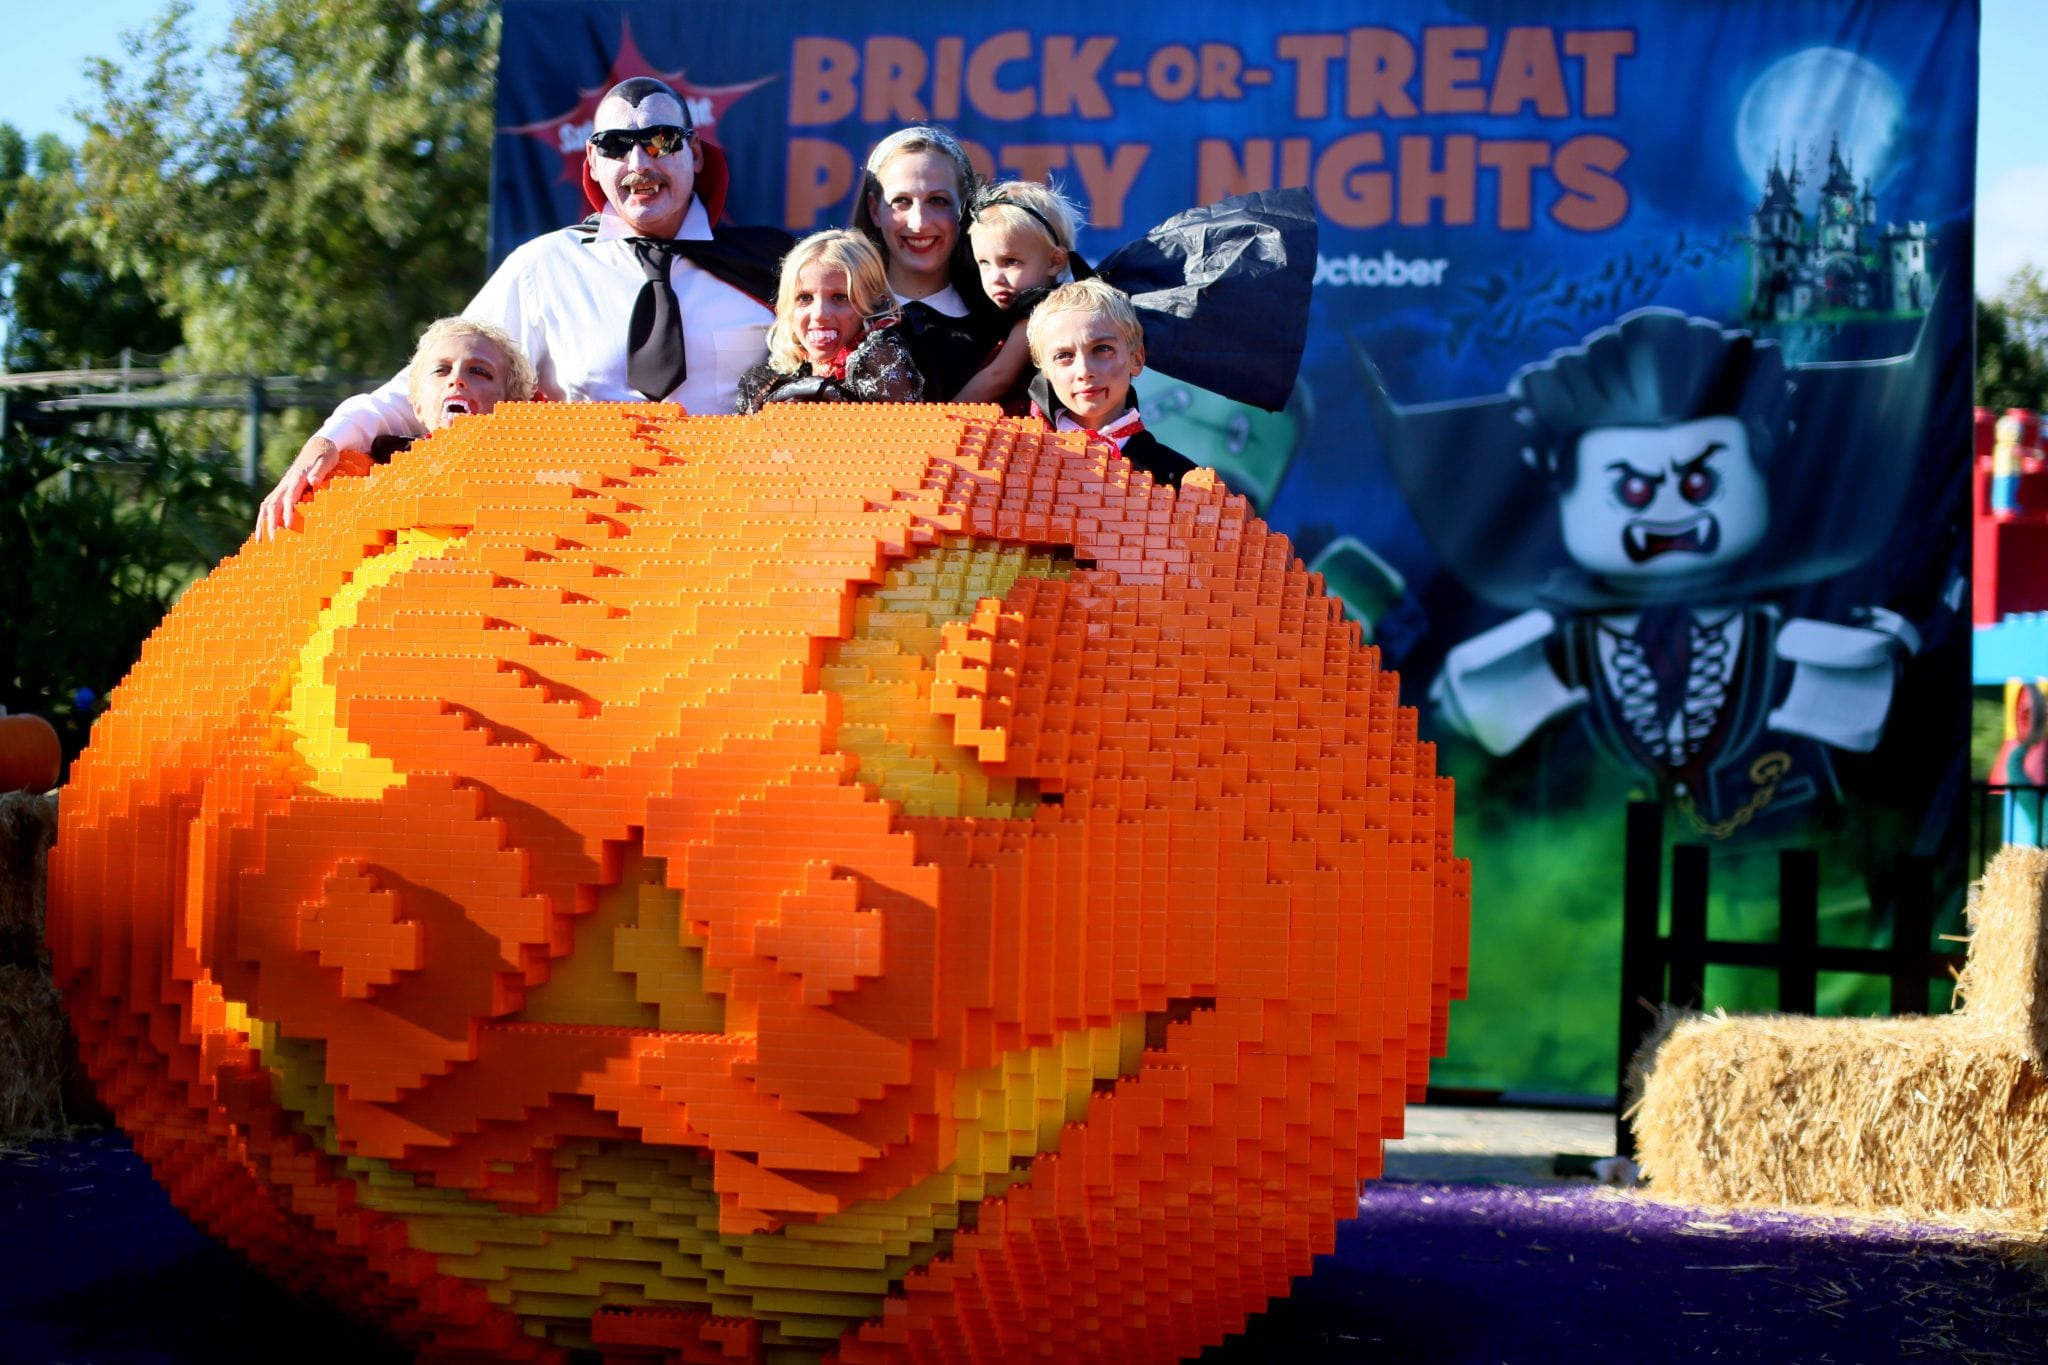 Legoland's Brick-Or-Treat Party Nights